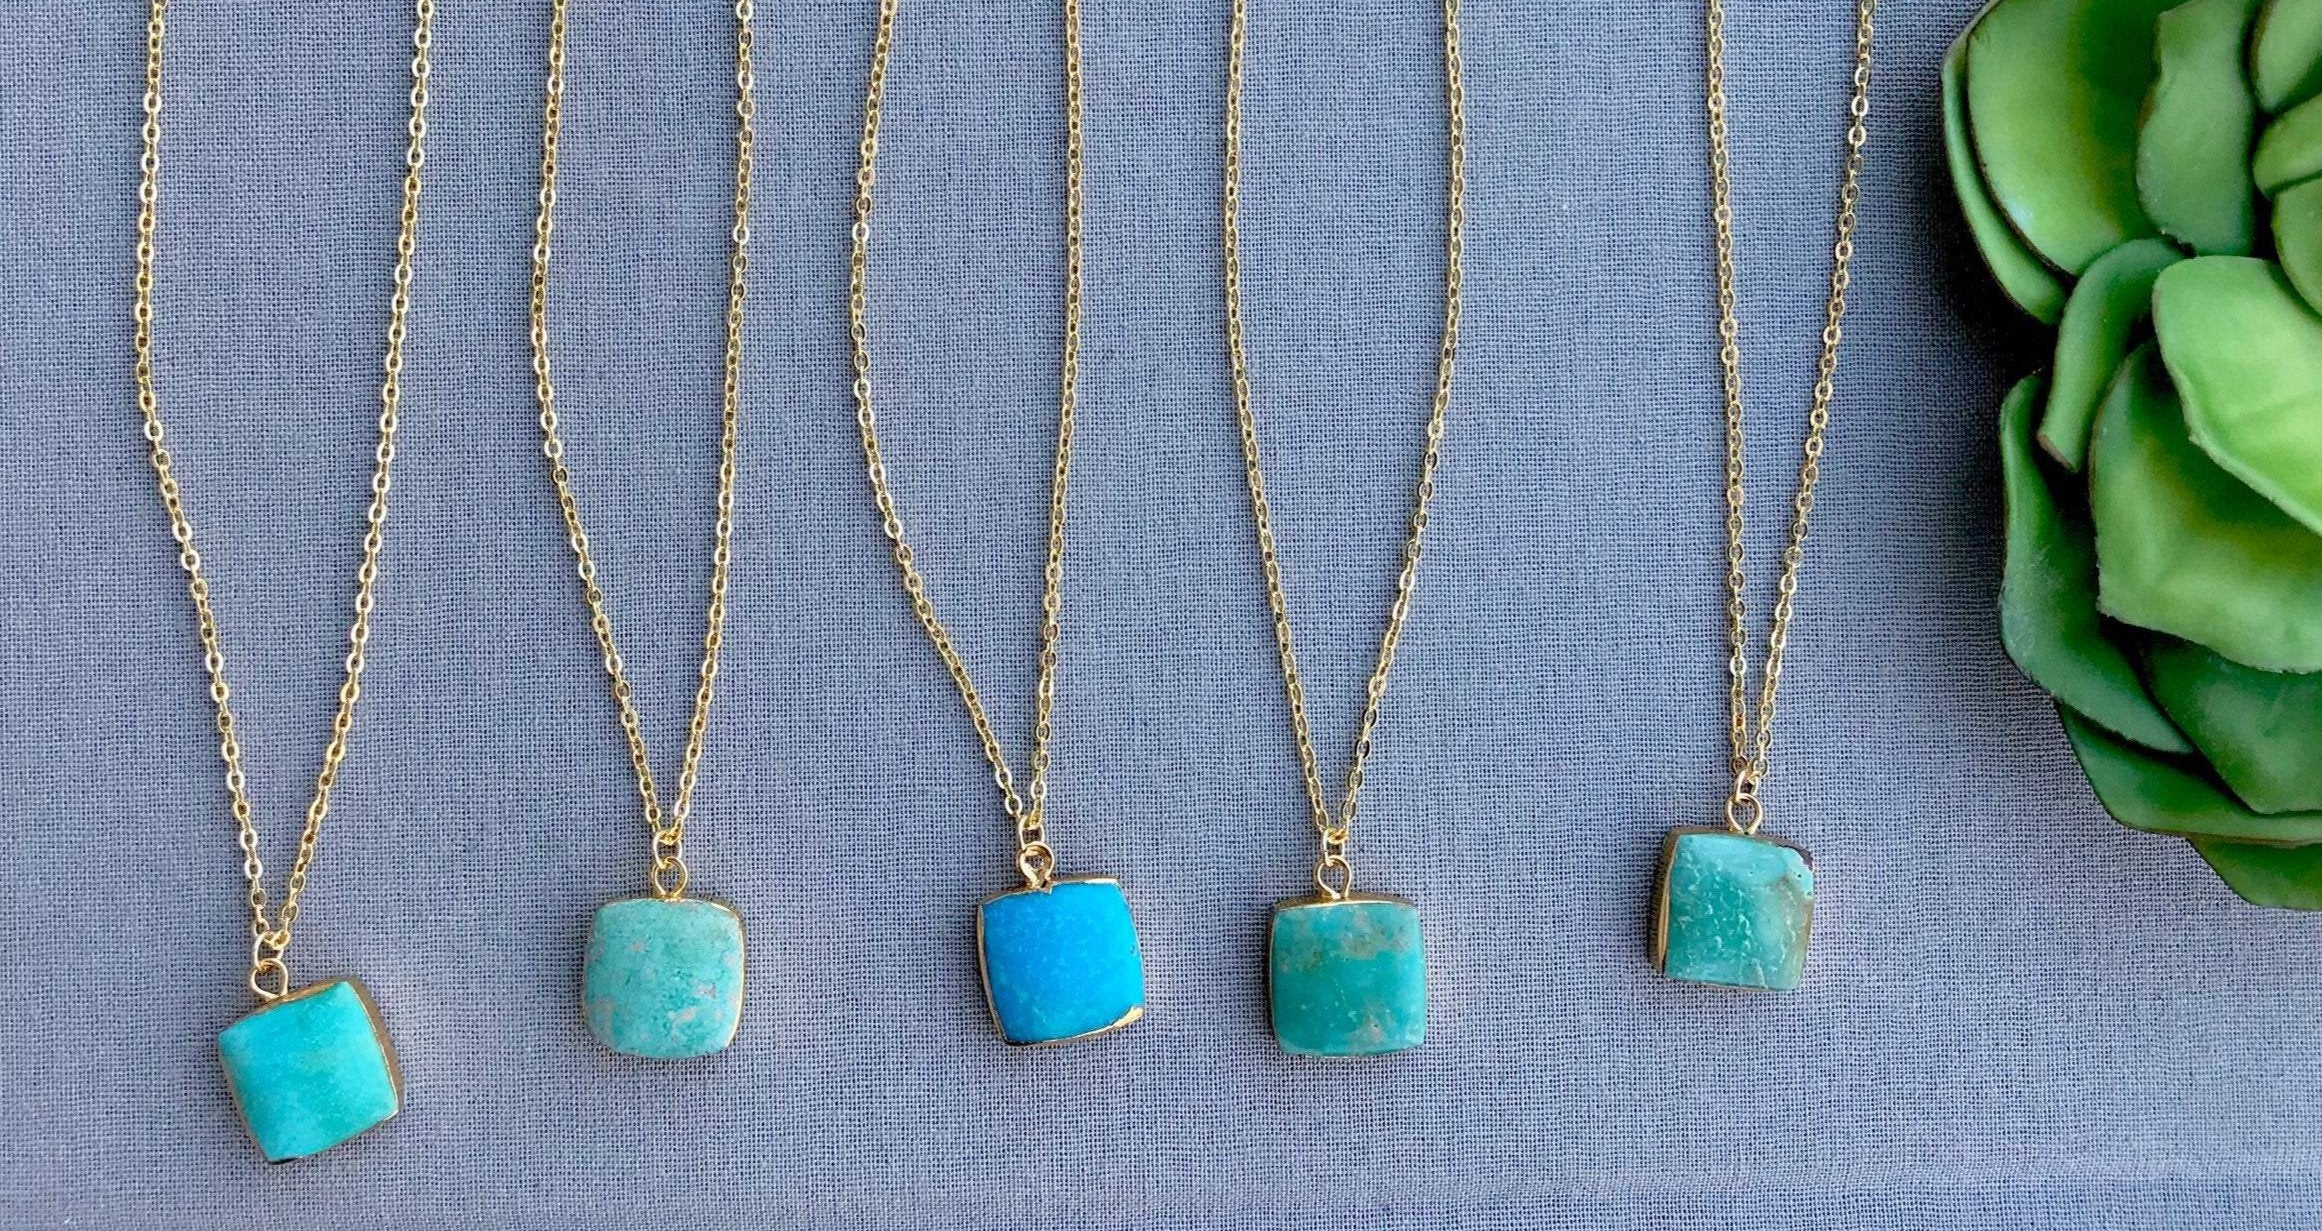 Genuine Turquoise Square Pendant Necklace - Gold